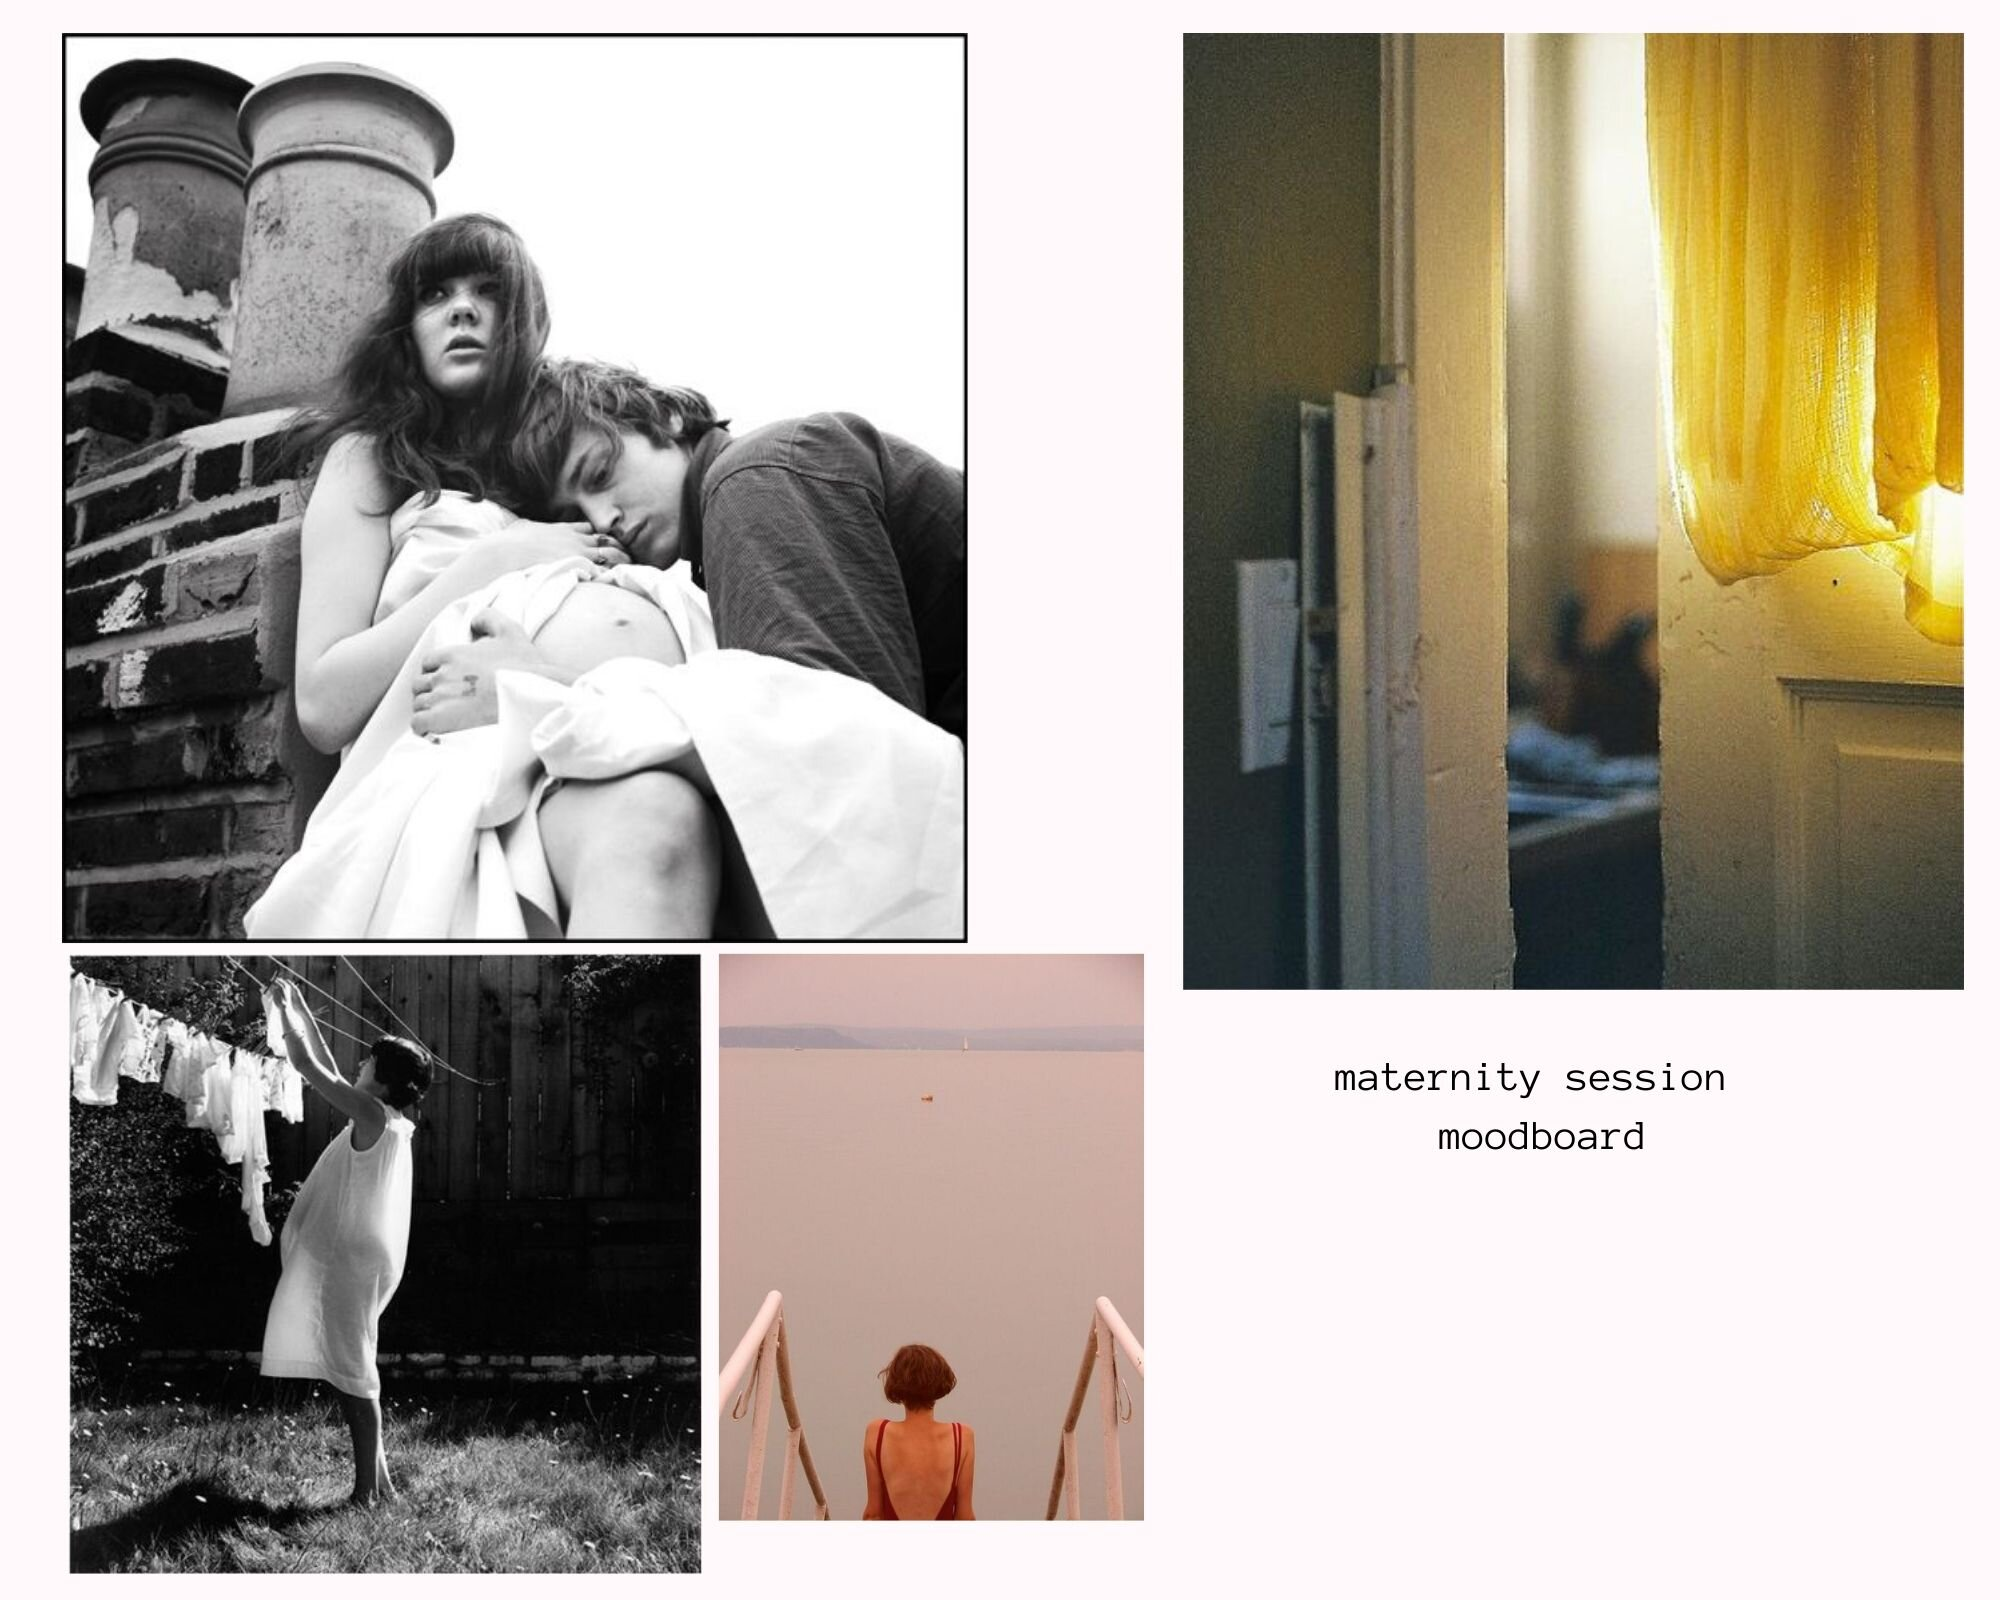 moodboard_maternity_session